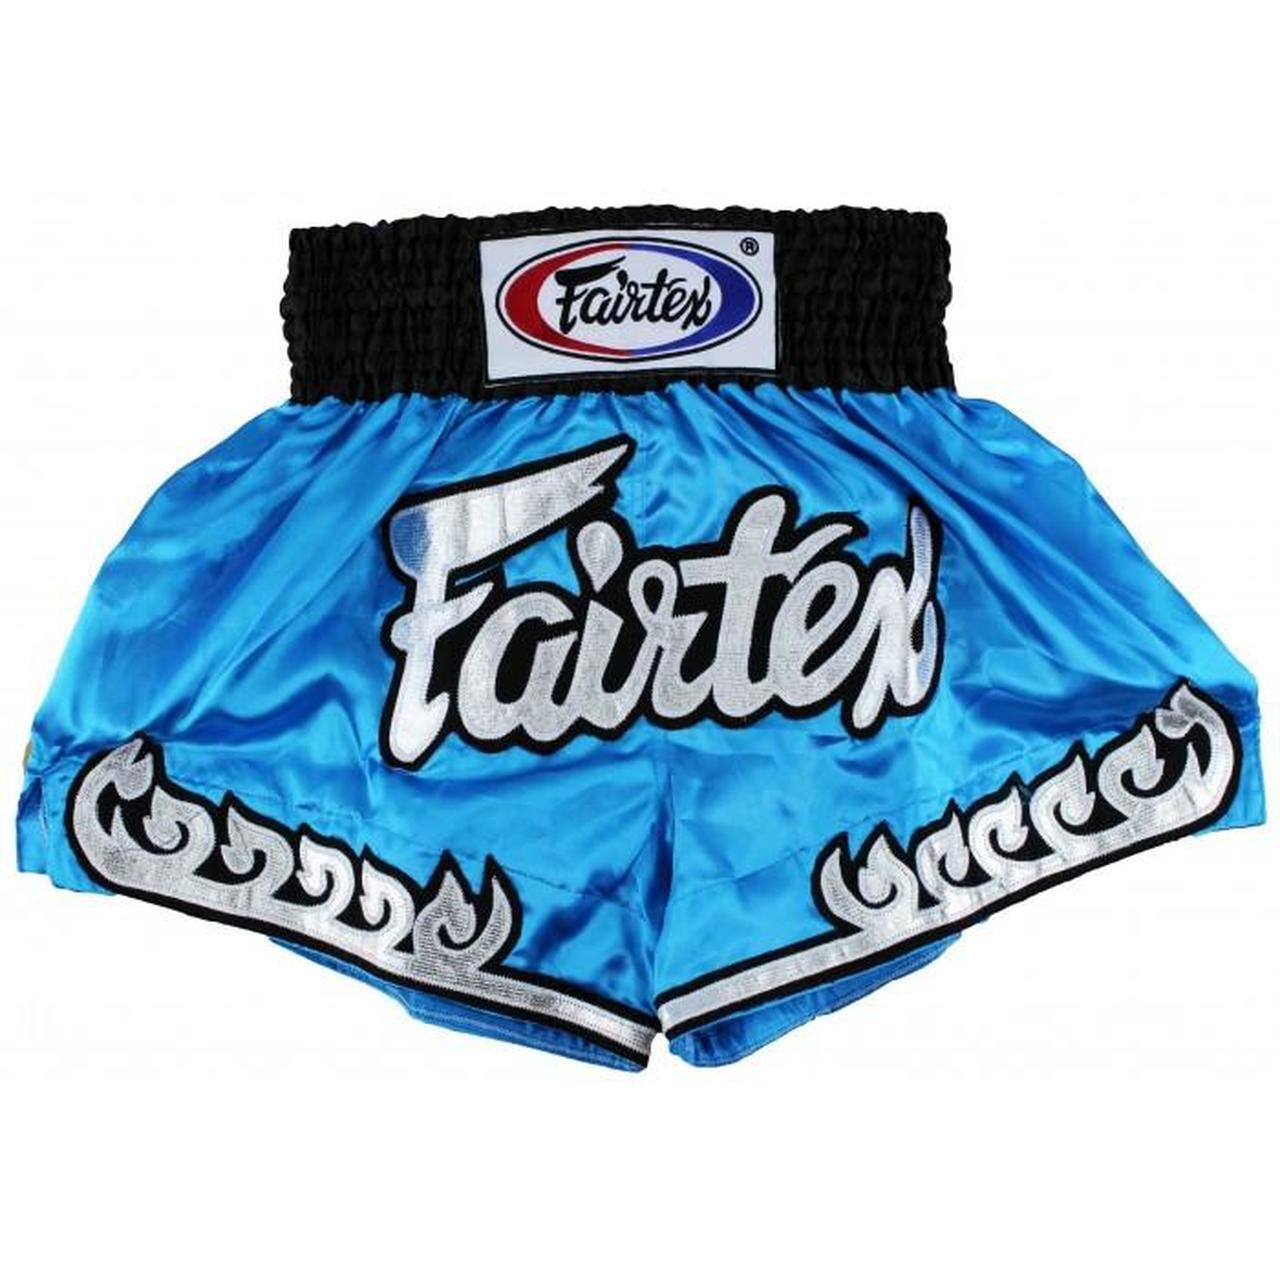 FAIRTEX - Blue Thai Flame Muay Thai Boxing Shorts (BS0631) - Small